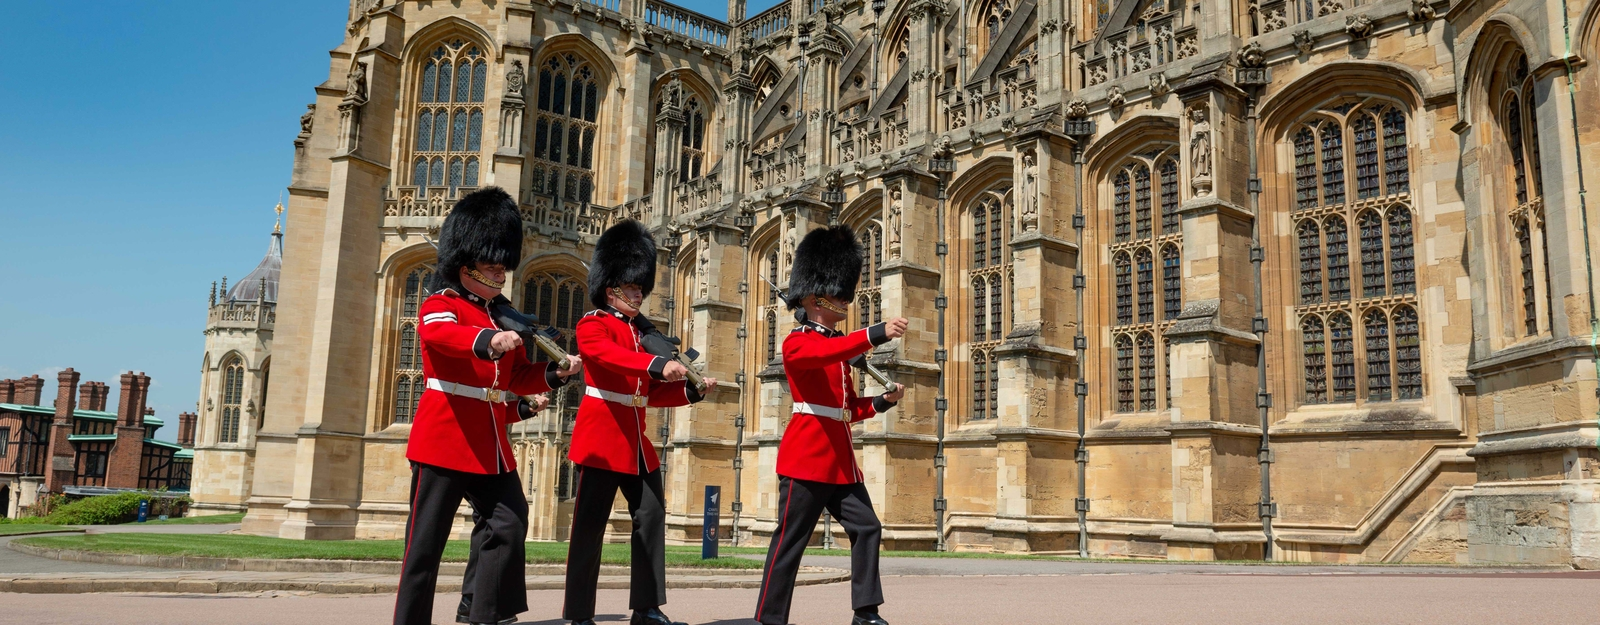 Soldiers walk past St George's Chapel